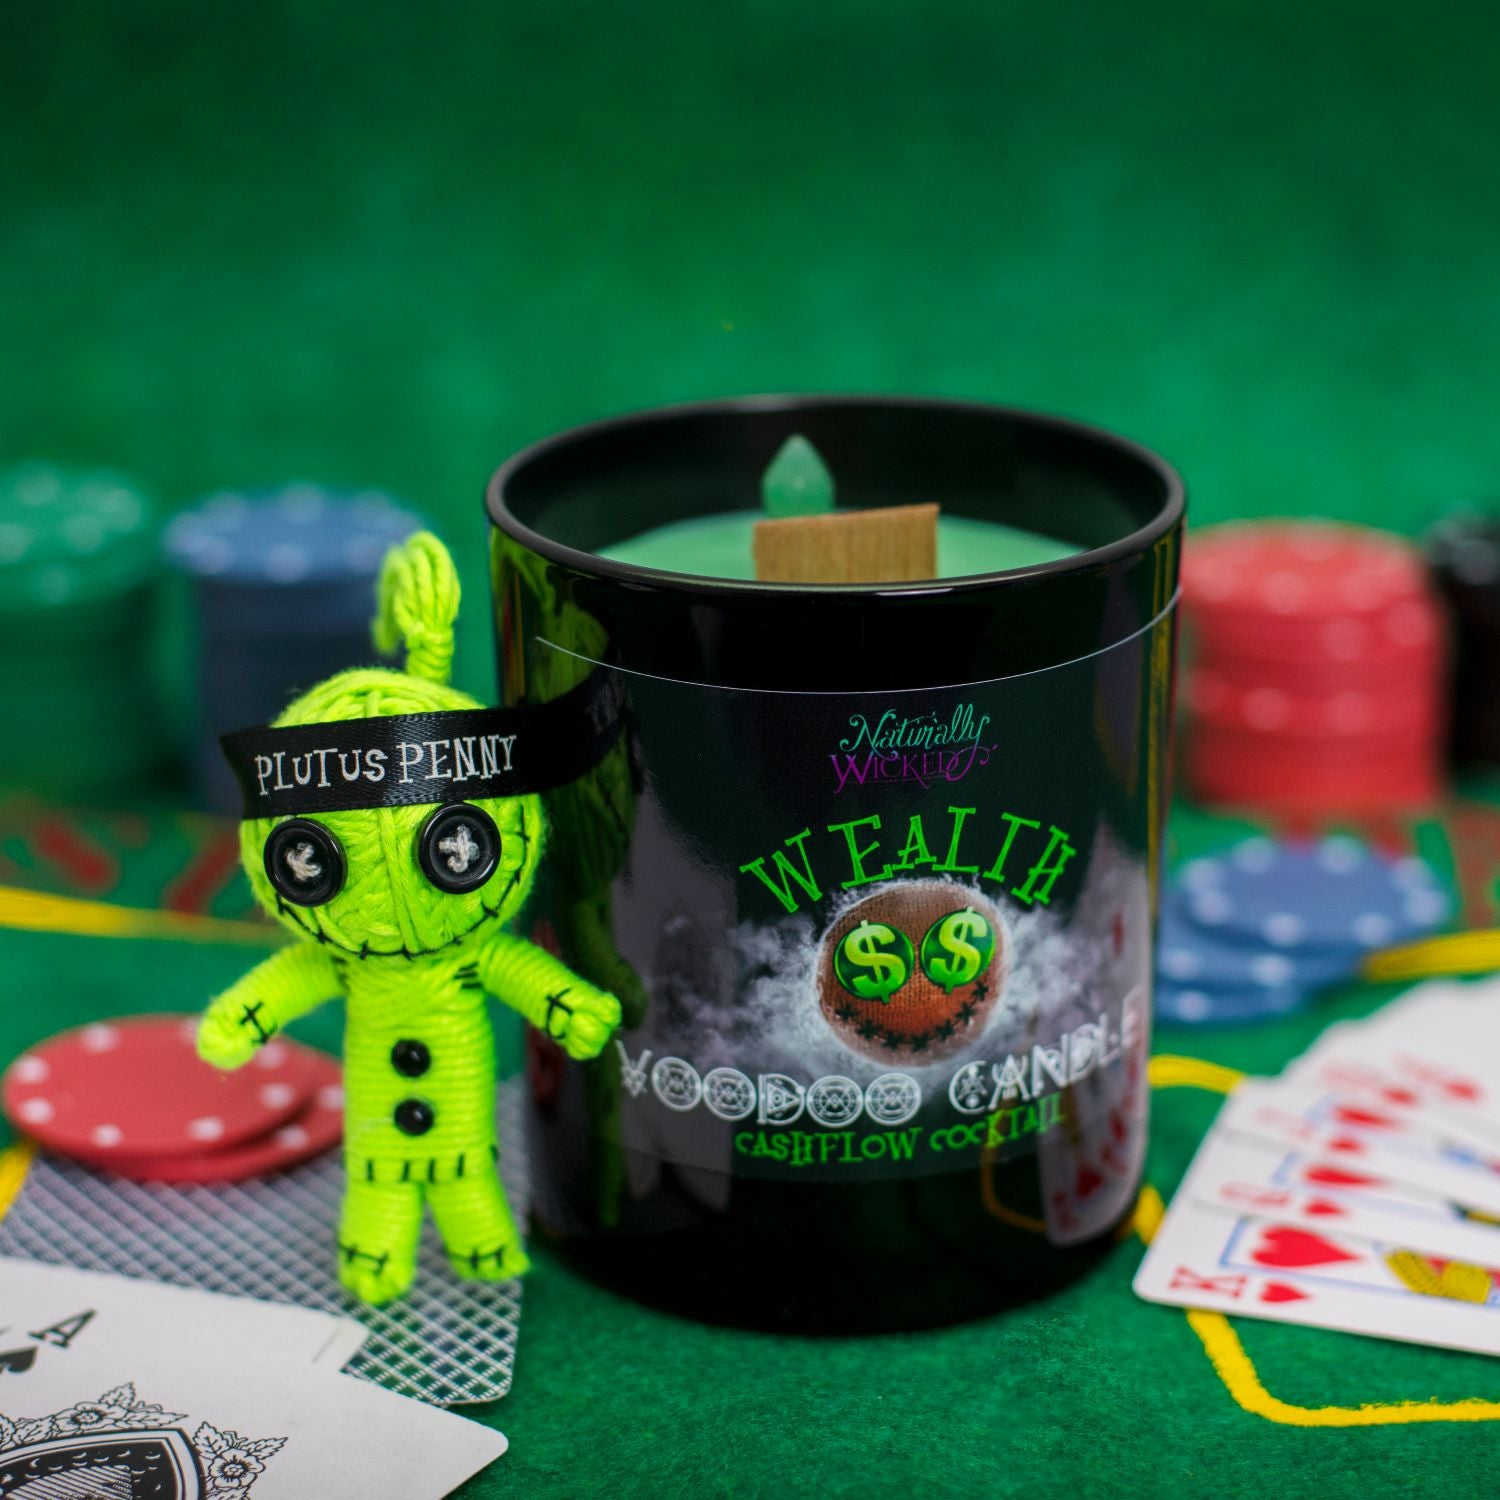 Naturally Wicked Voodoo Wealth Candle On Green Casino Table Amongst Green Voodoo Doll, Poker Chips & Playing Cards